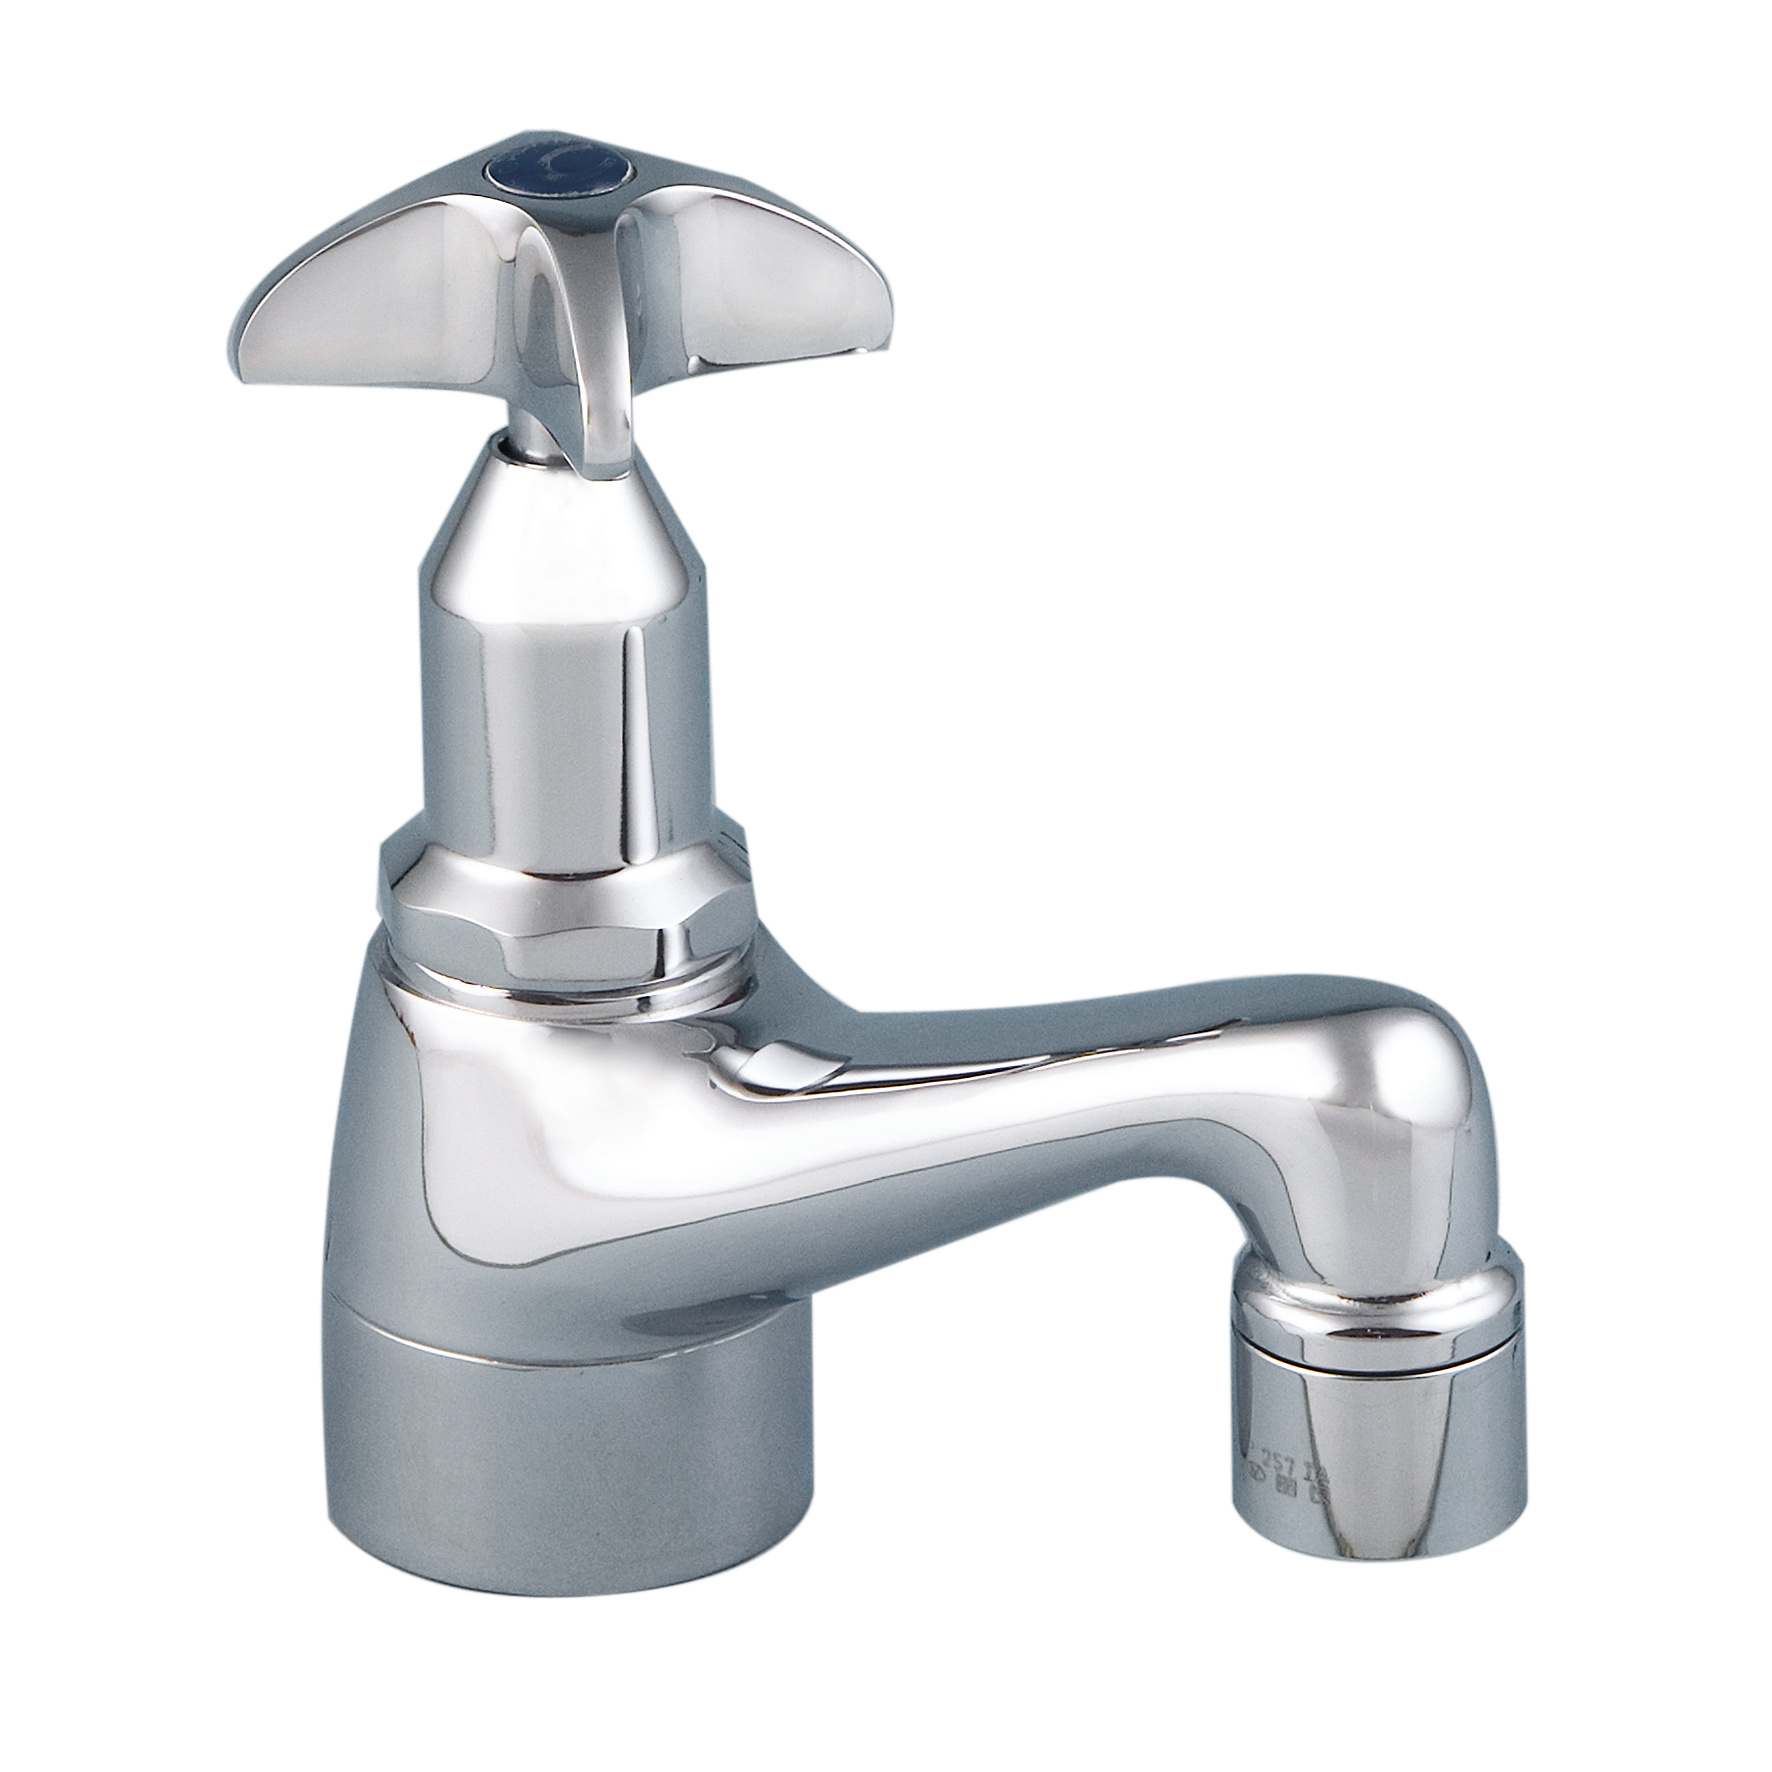 Galvin 20engineering 20chrome 20plated 20vandal 20resistant 20jumper 20valve 20pillar 20tap 20dpw.